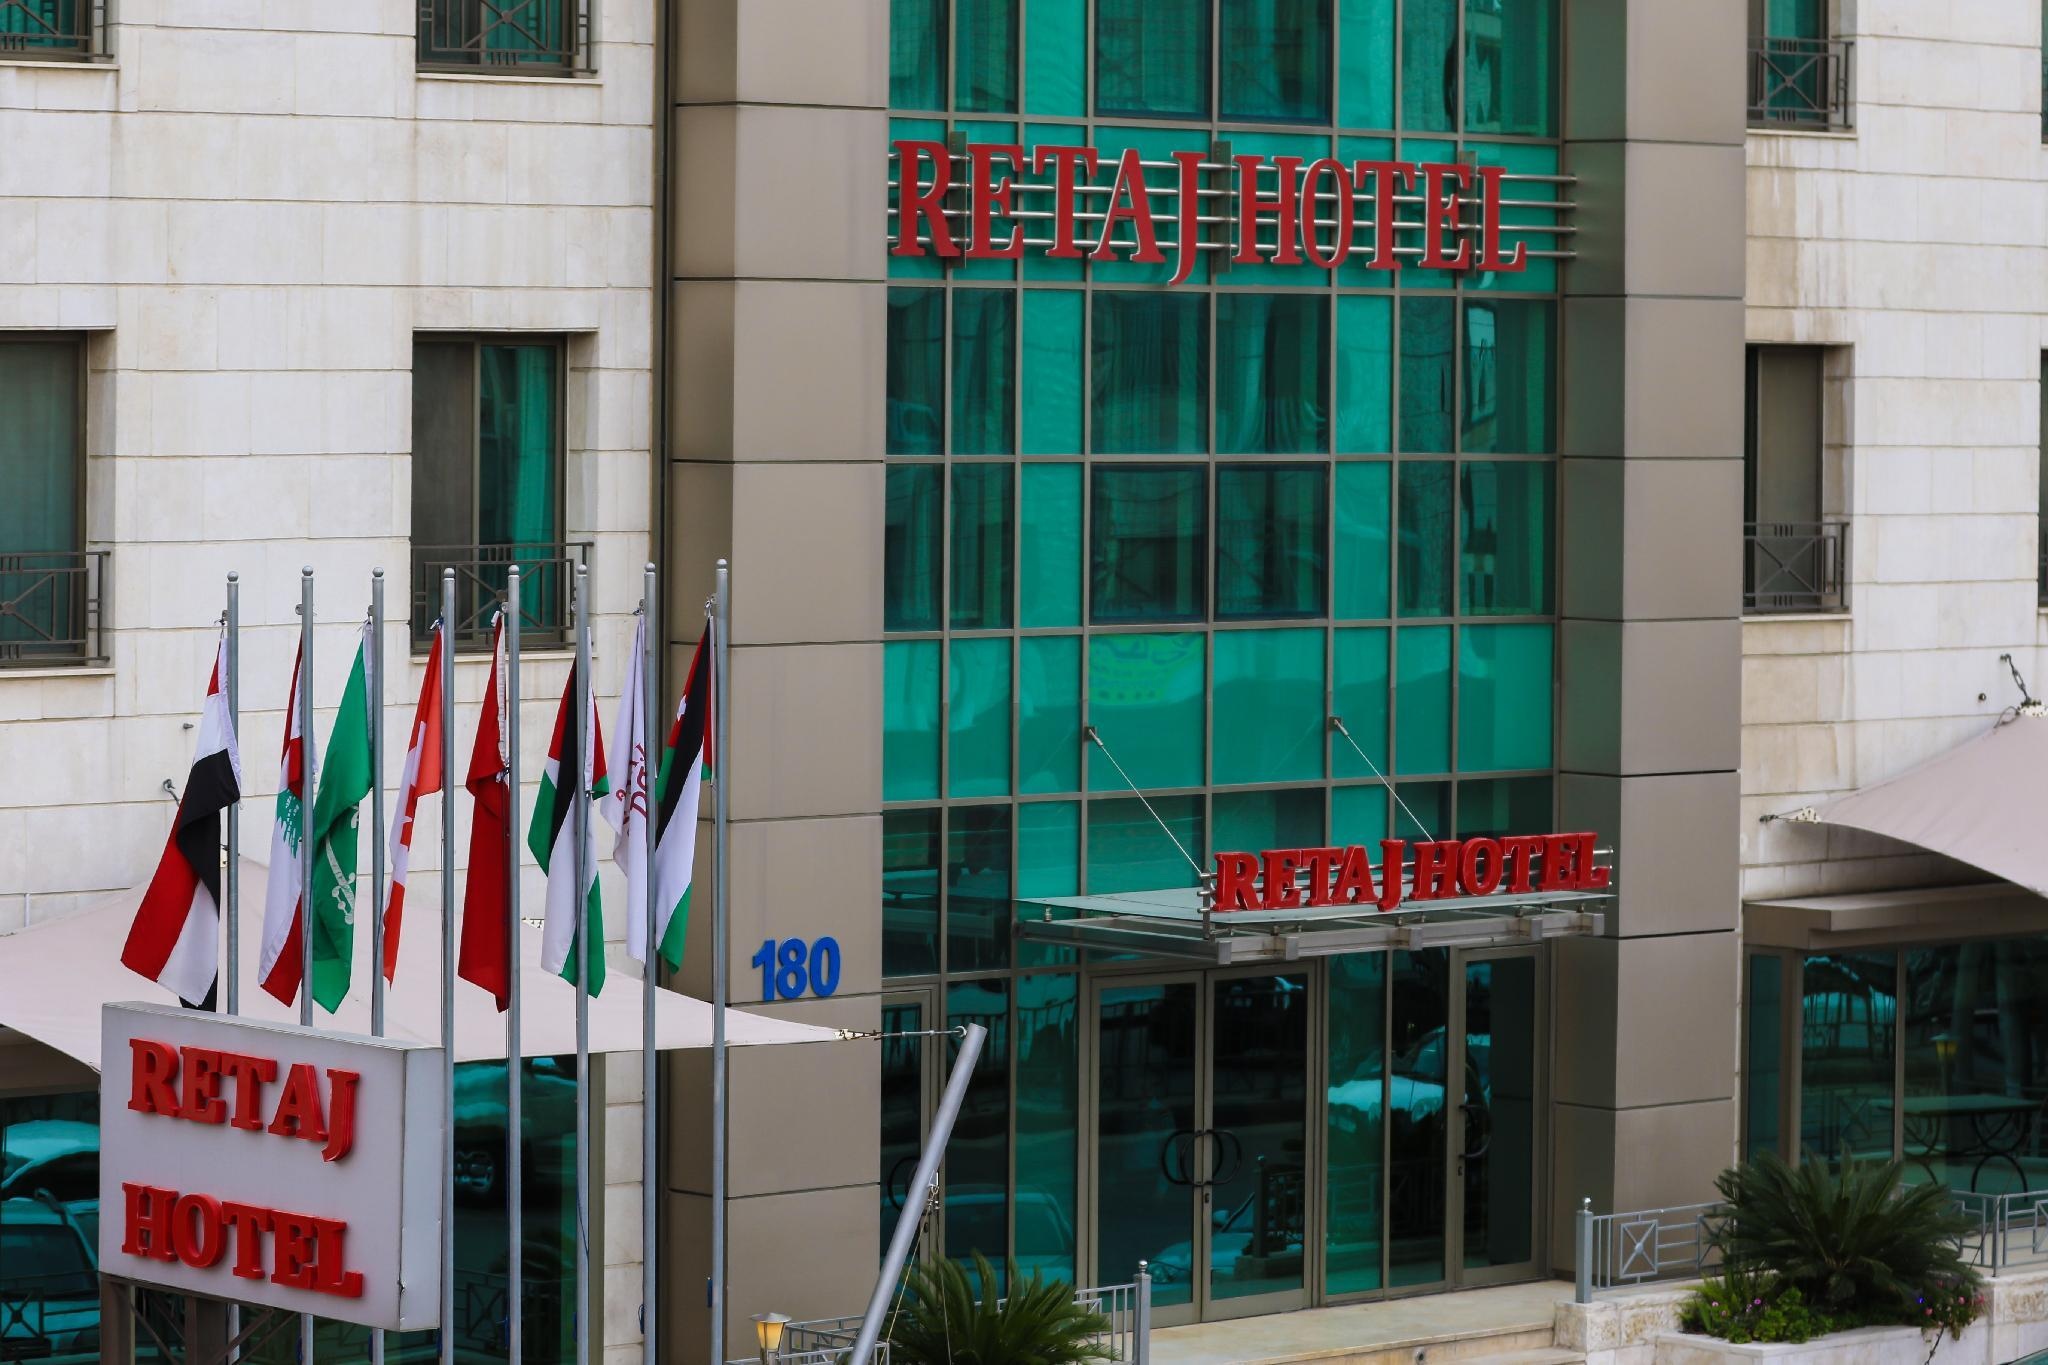 retaj hotel room deals reviews photos amman jordan rh agoda com